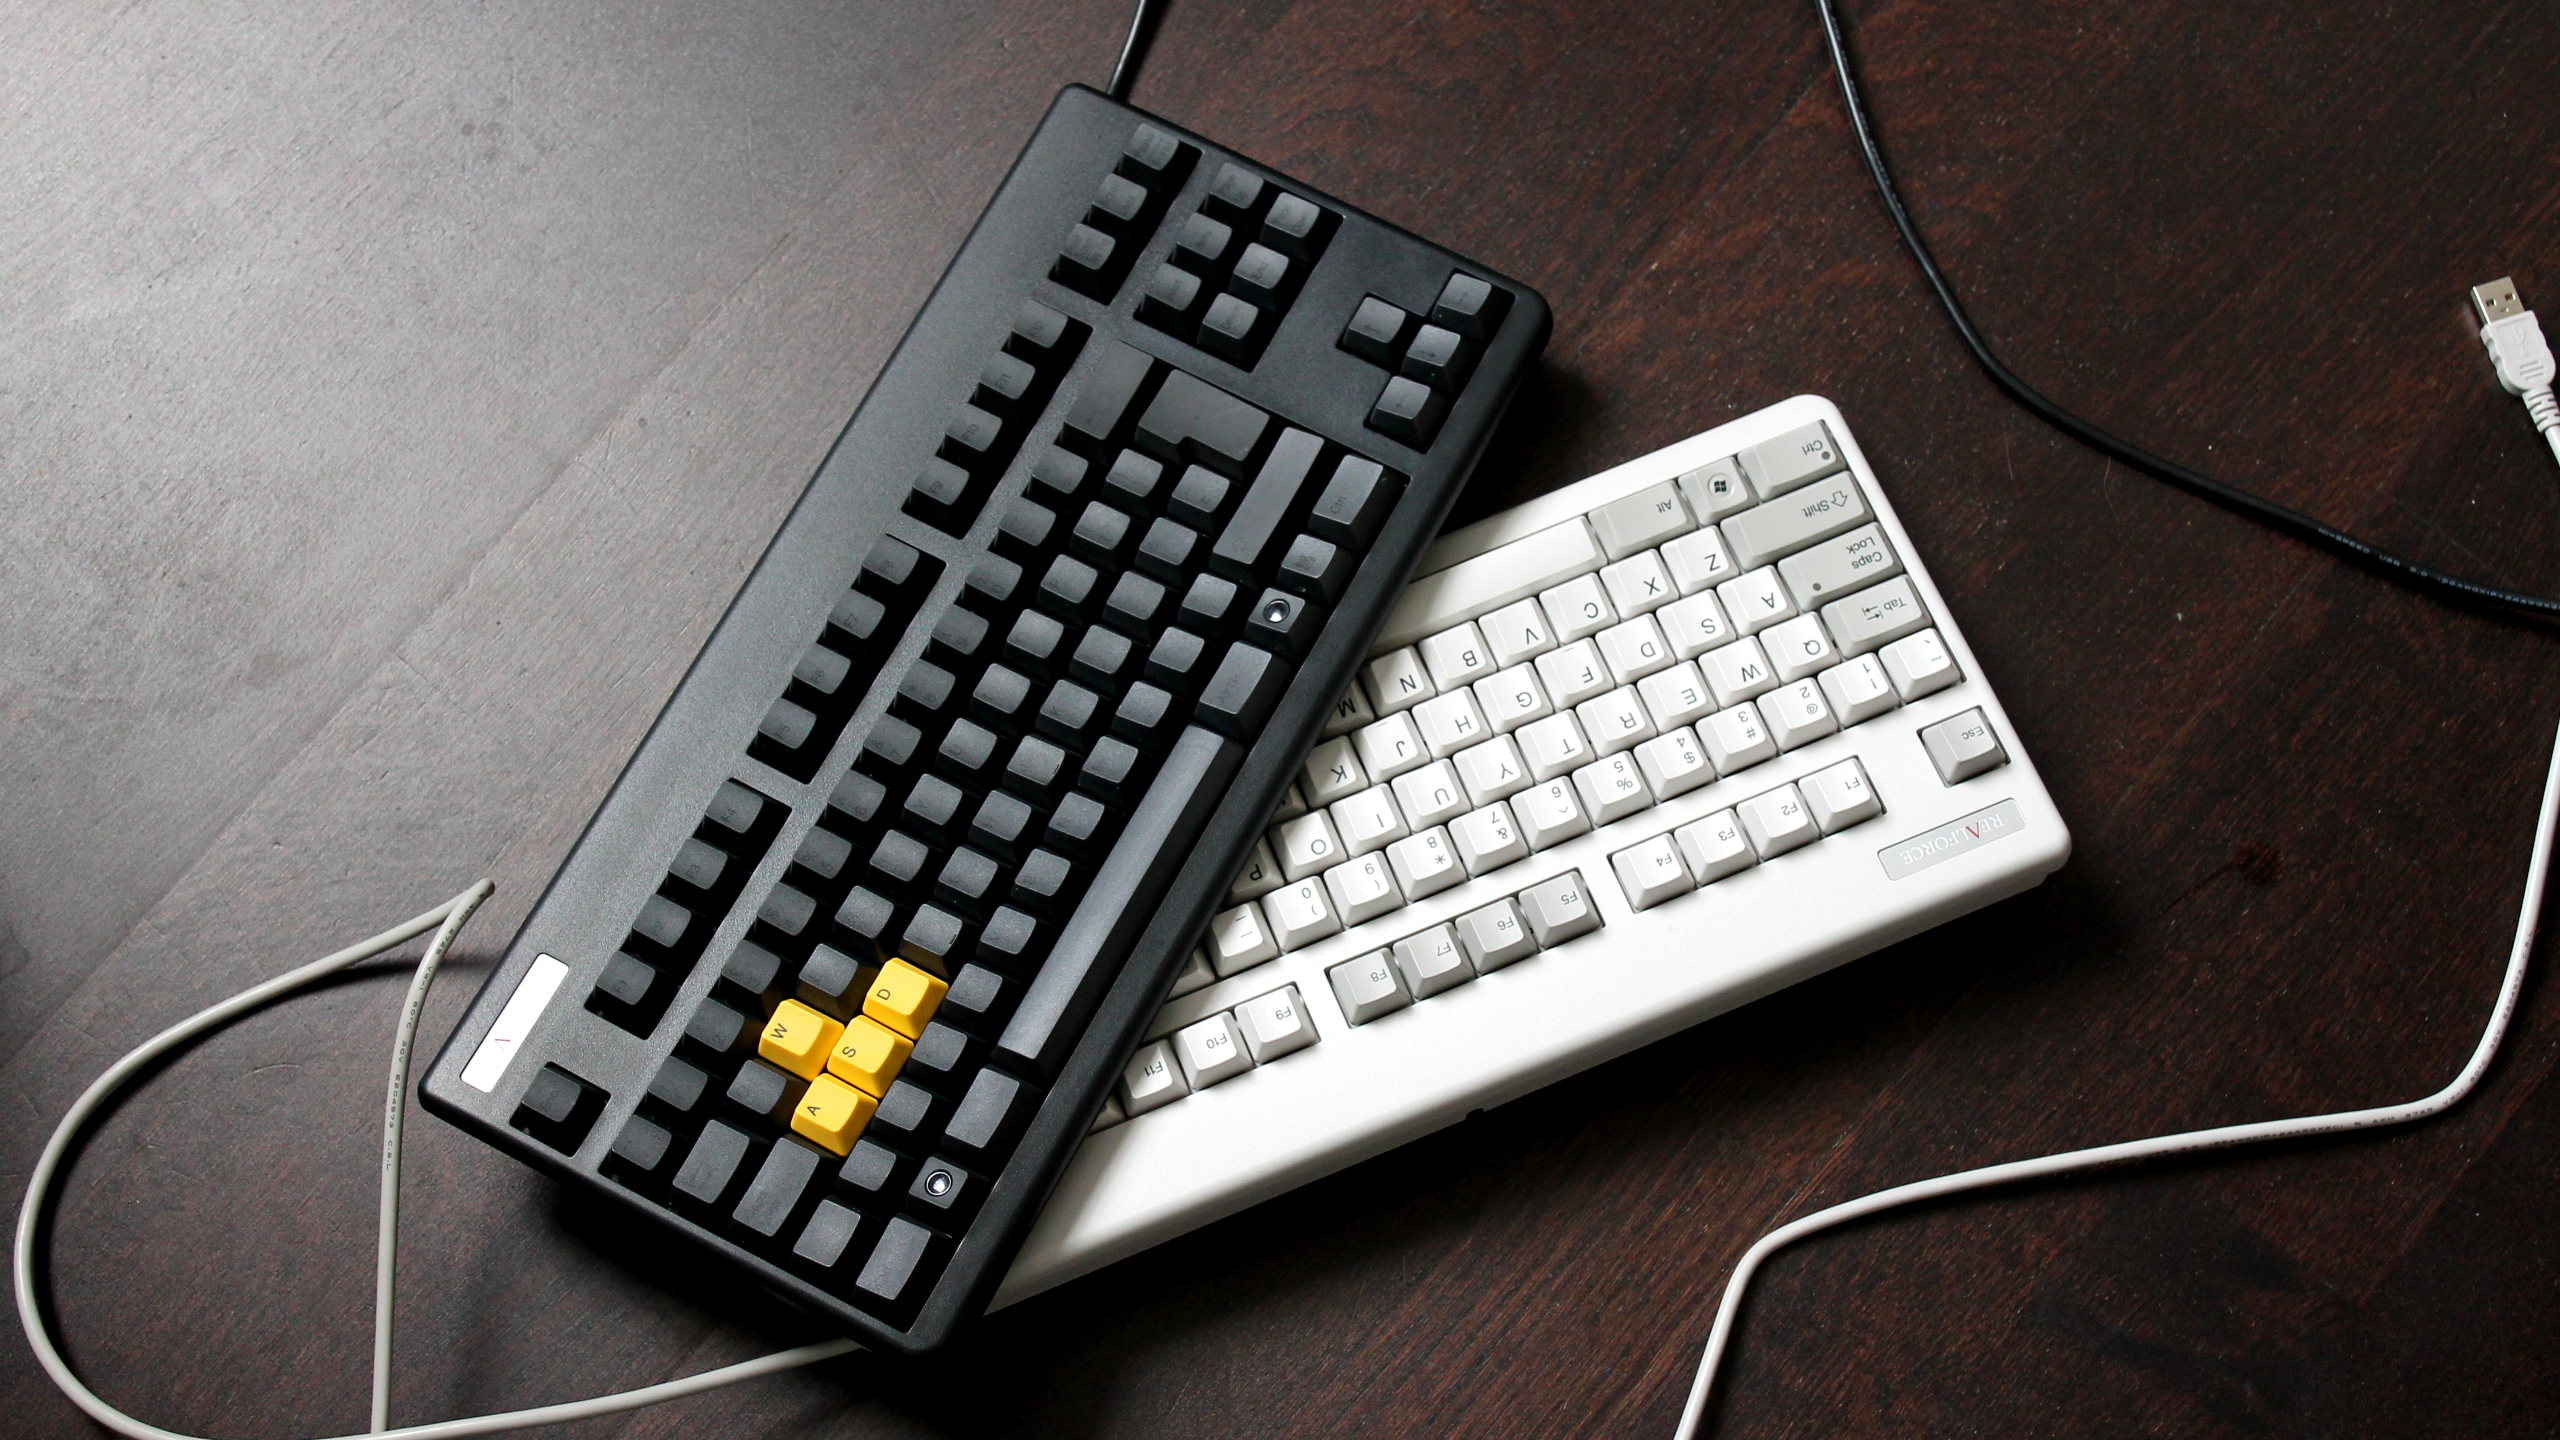 Best Gaming Keyboards 2020.Best Keyboards 2020 The Best Typing Companions Techradar